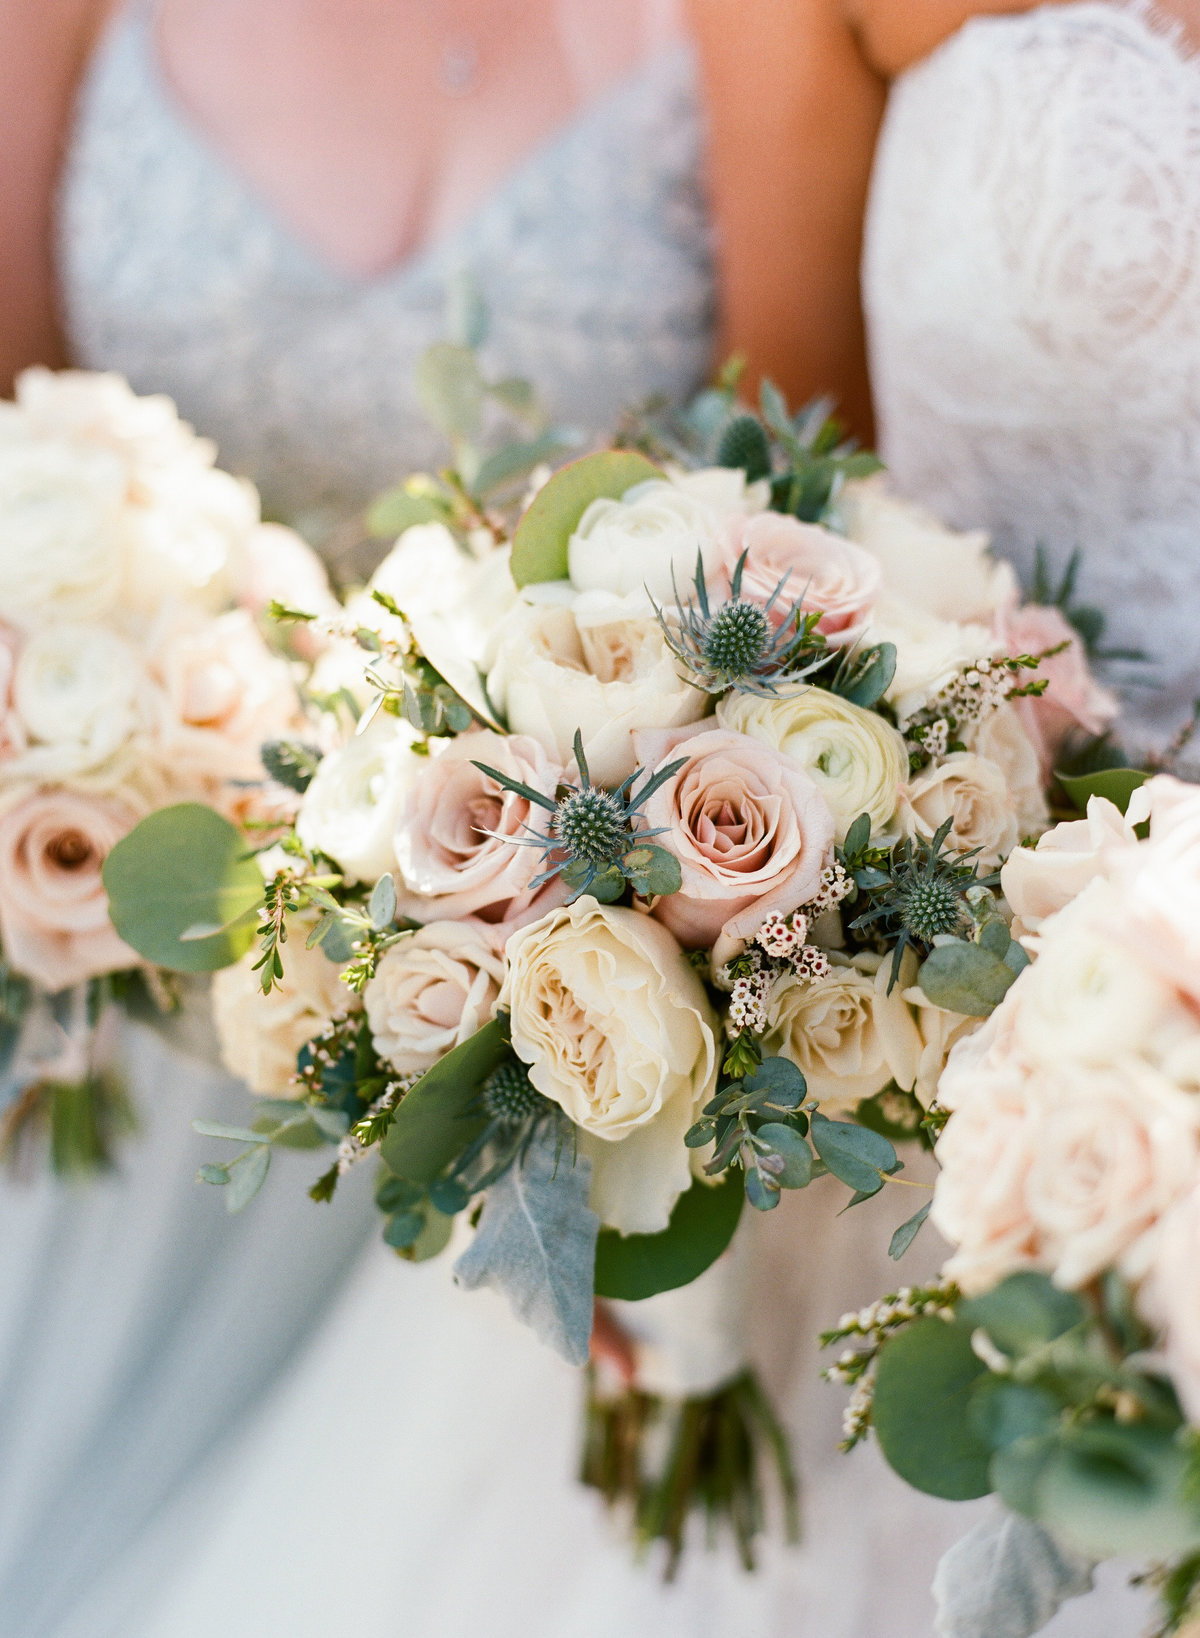 Blush and white bouquets